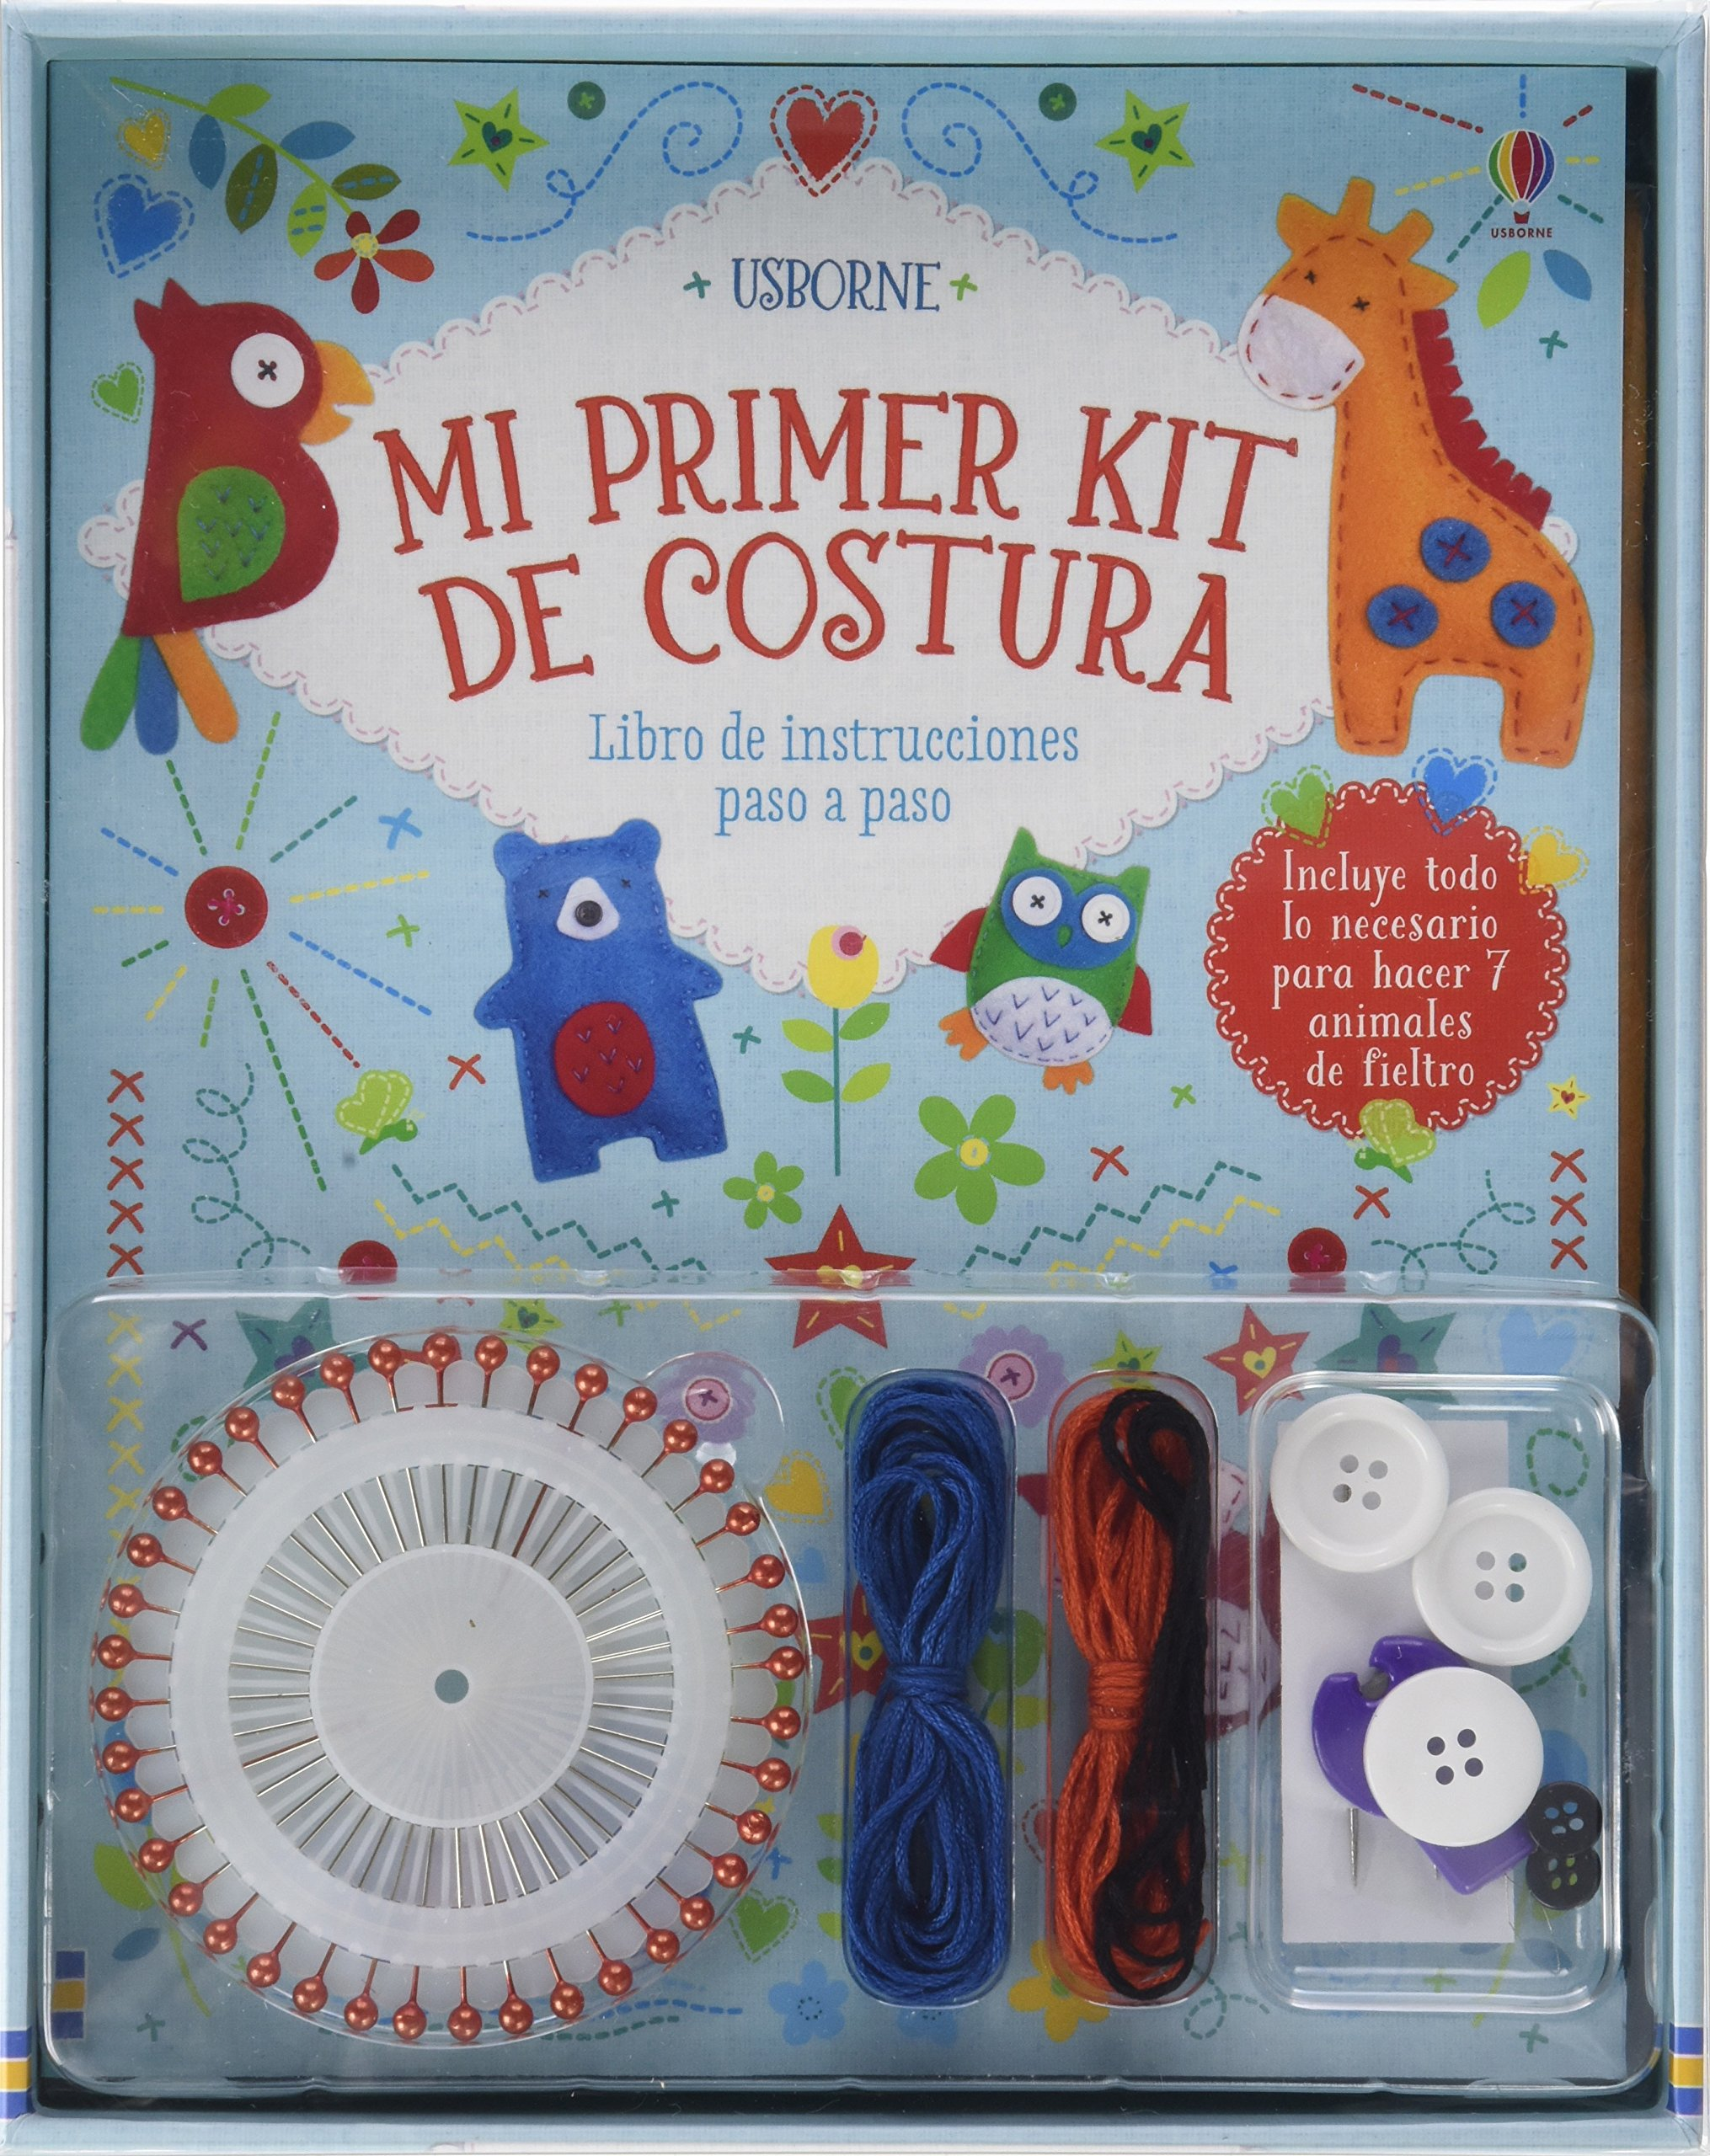 Mi primer kit de costura: Amazon.es: Abigail Wheatley, Abigail ...